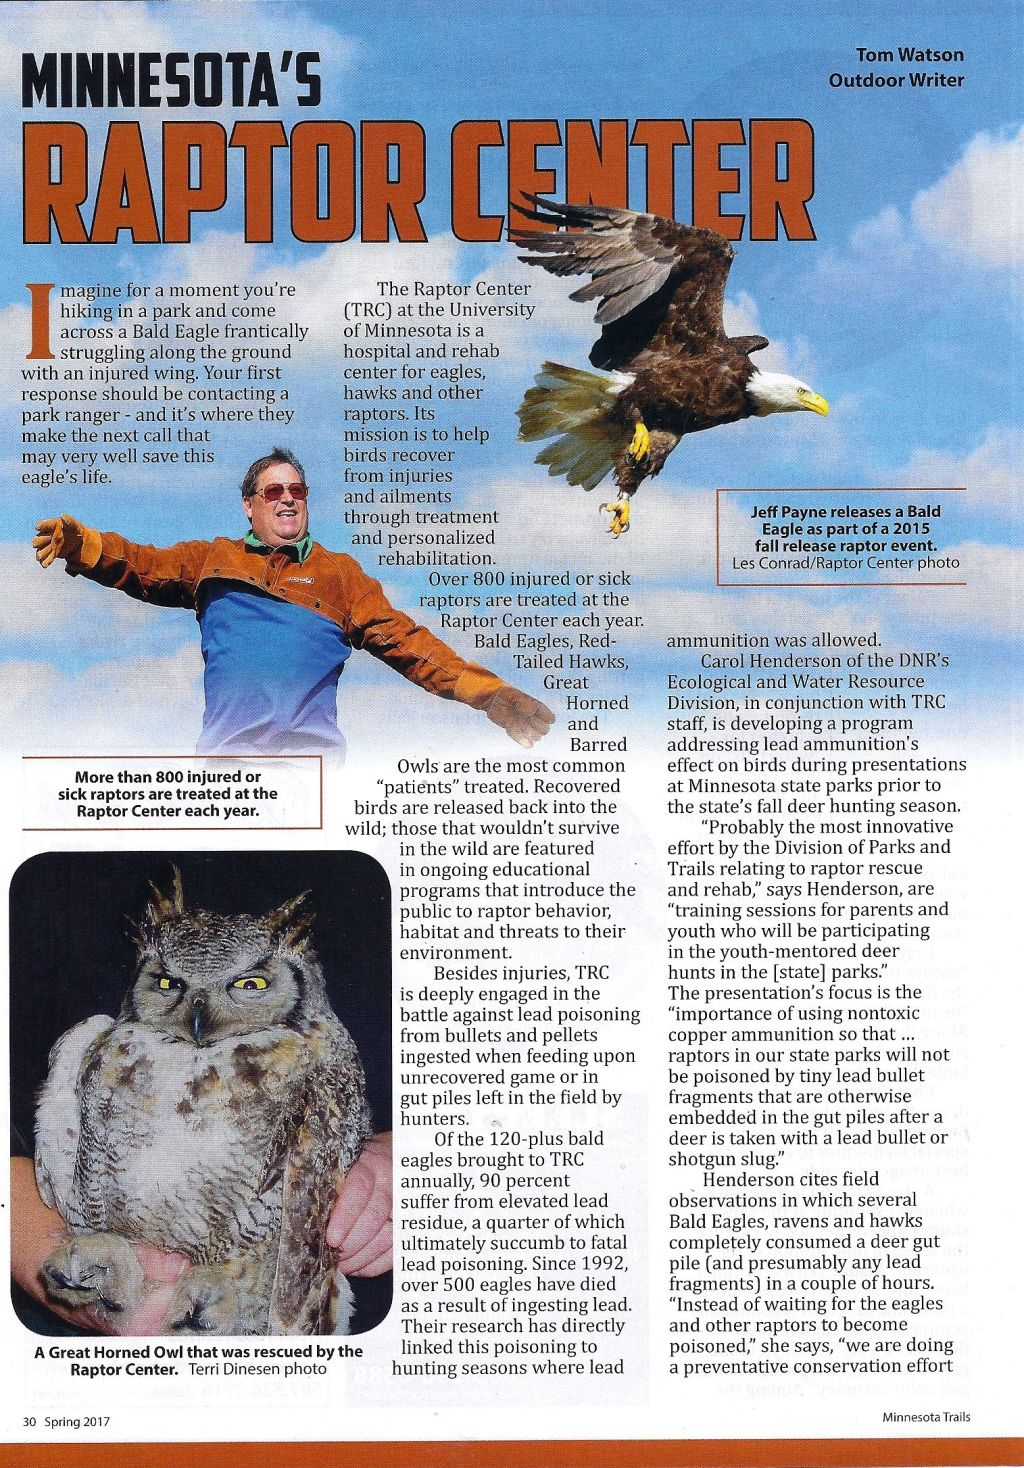 ARTICLE-RAPTOR CENTER-MN TRAILS